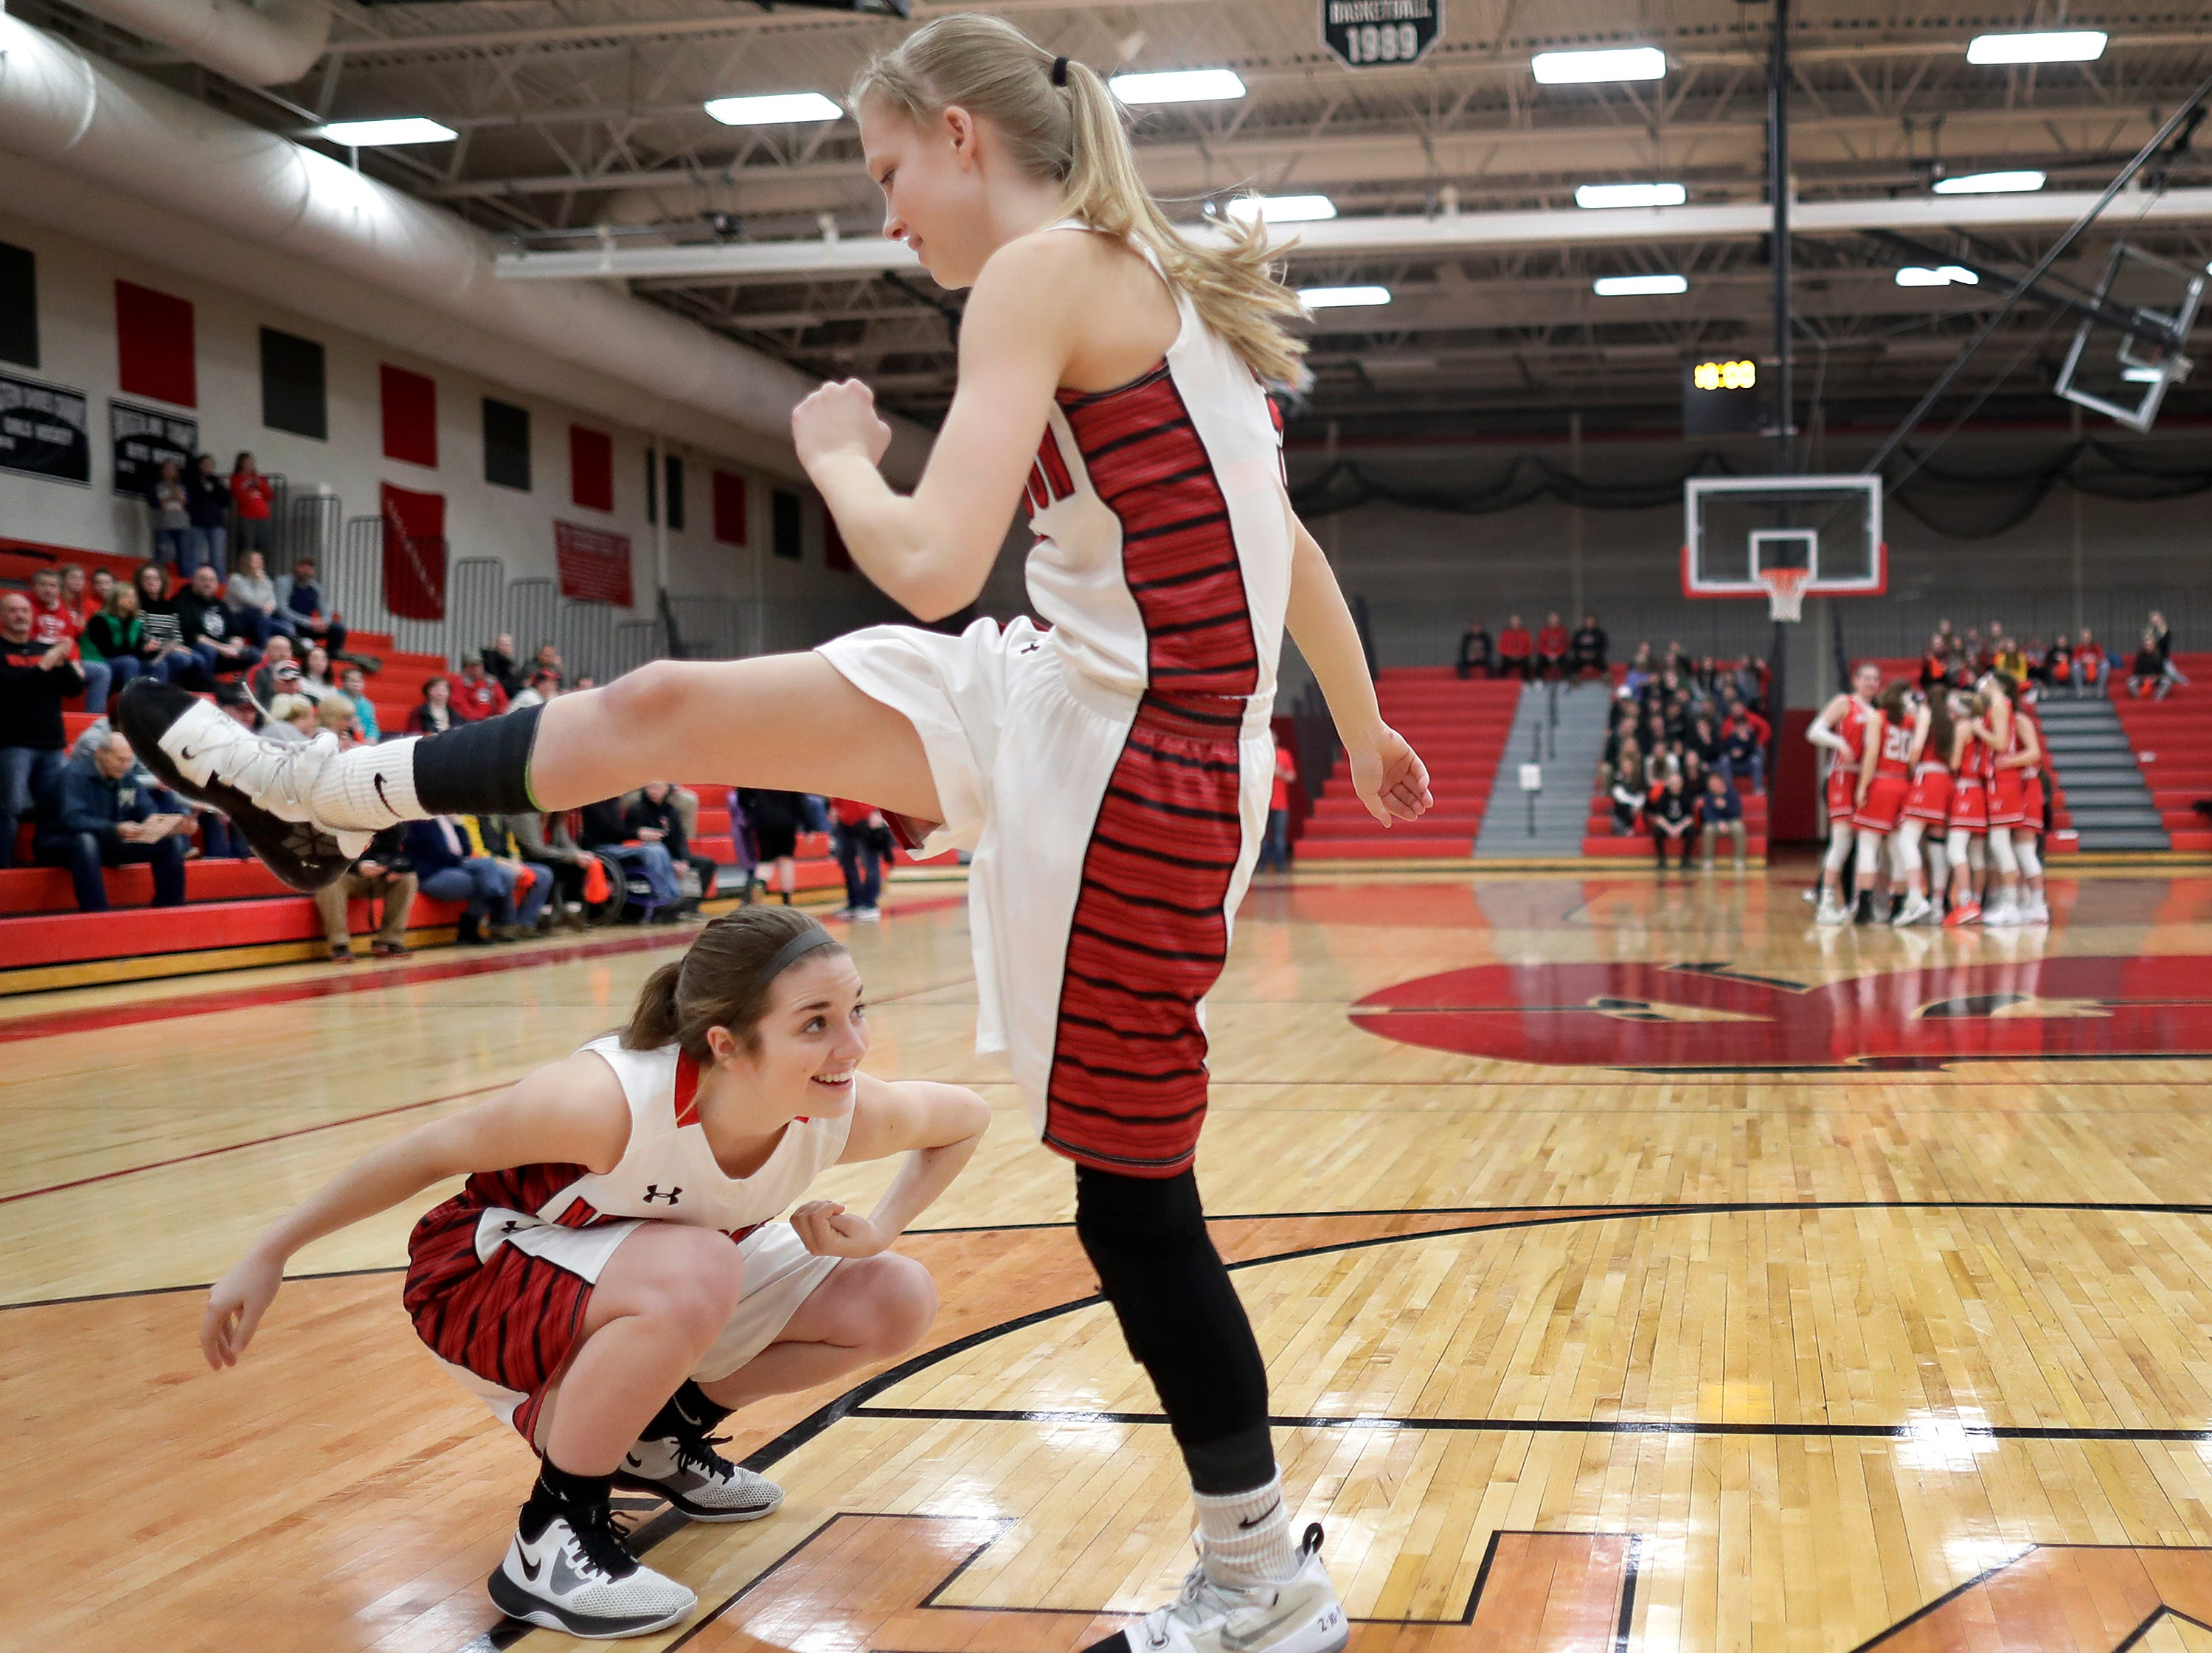 New London High School's #5 Tess Ruckdashel, left, and  #3 Kate Christian against Hortonville High School during their WIAA Division 2 girls basketball sectional semifinal gameThursday, February 28, 2019, at Kimberly High School in Kimberly, Wis. Hortonville defeated New London 67 to 42.